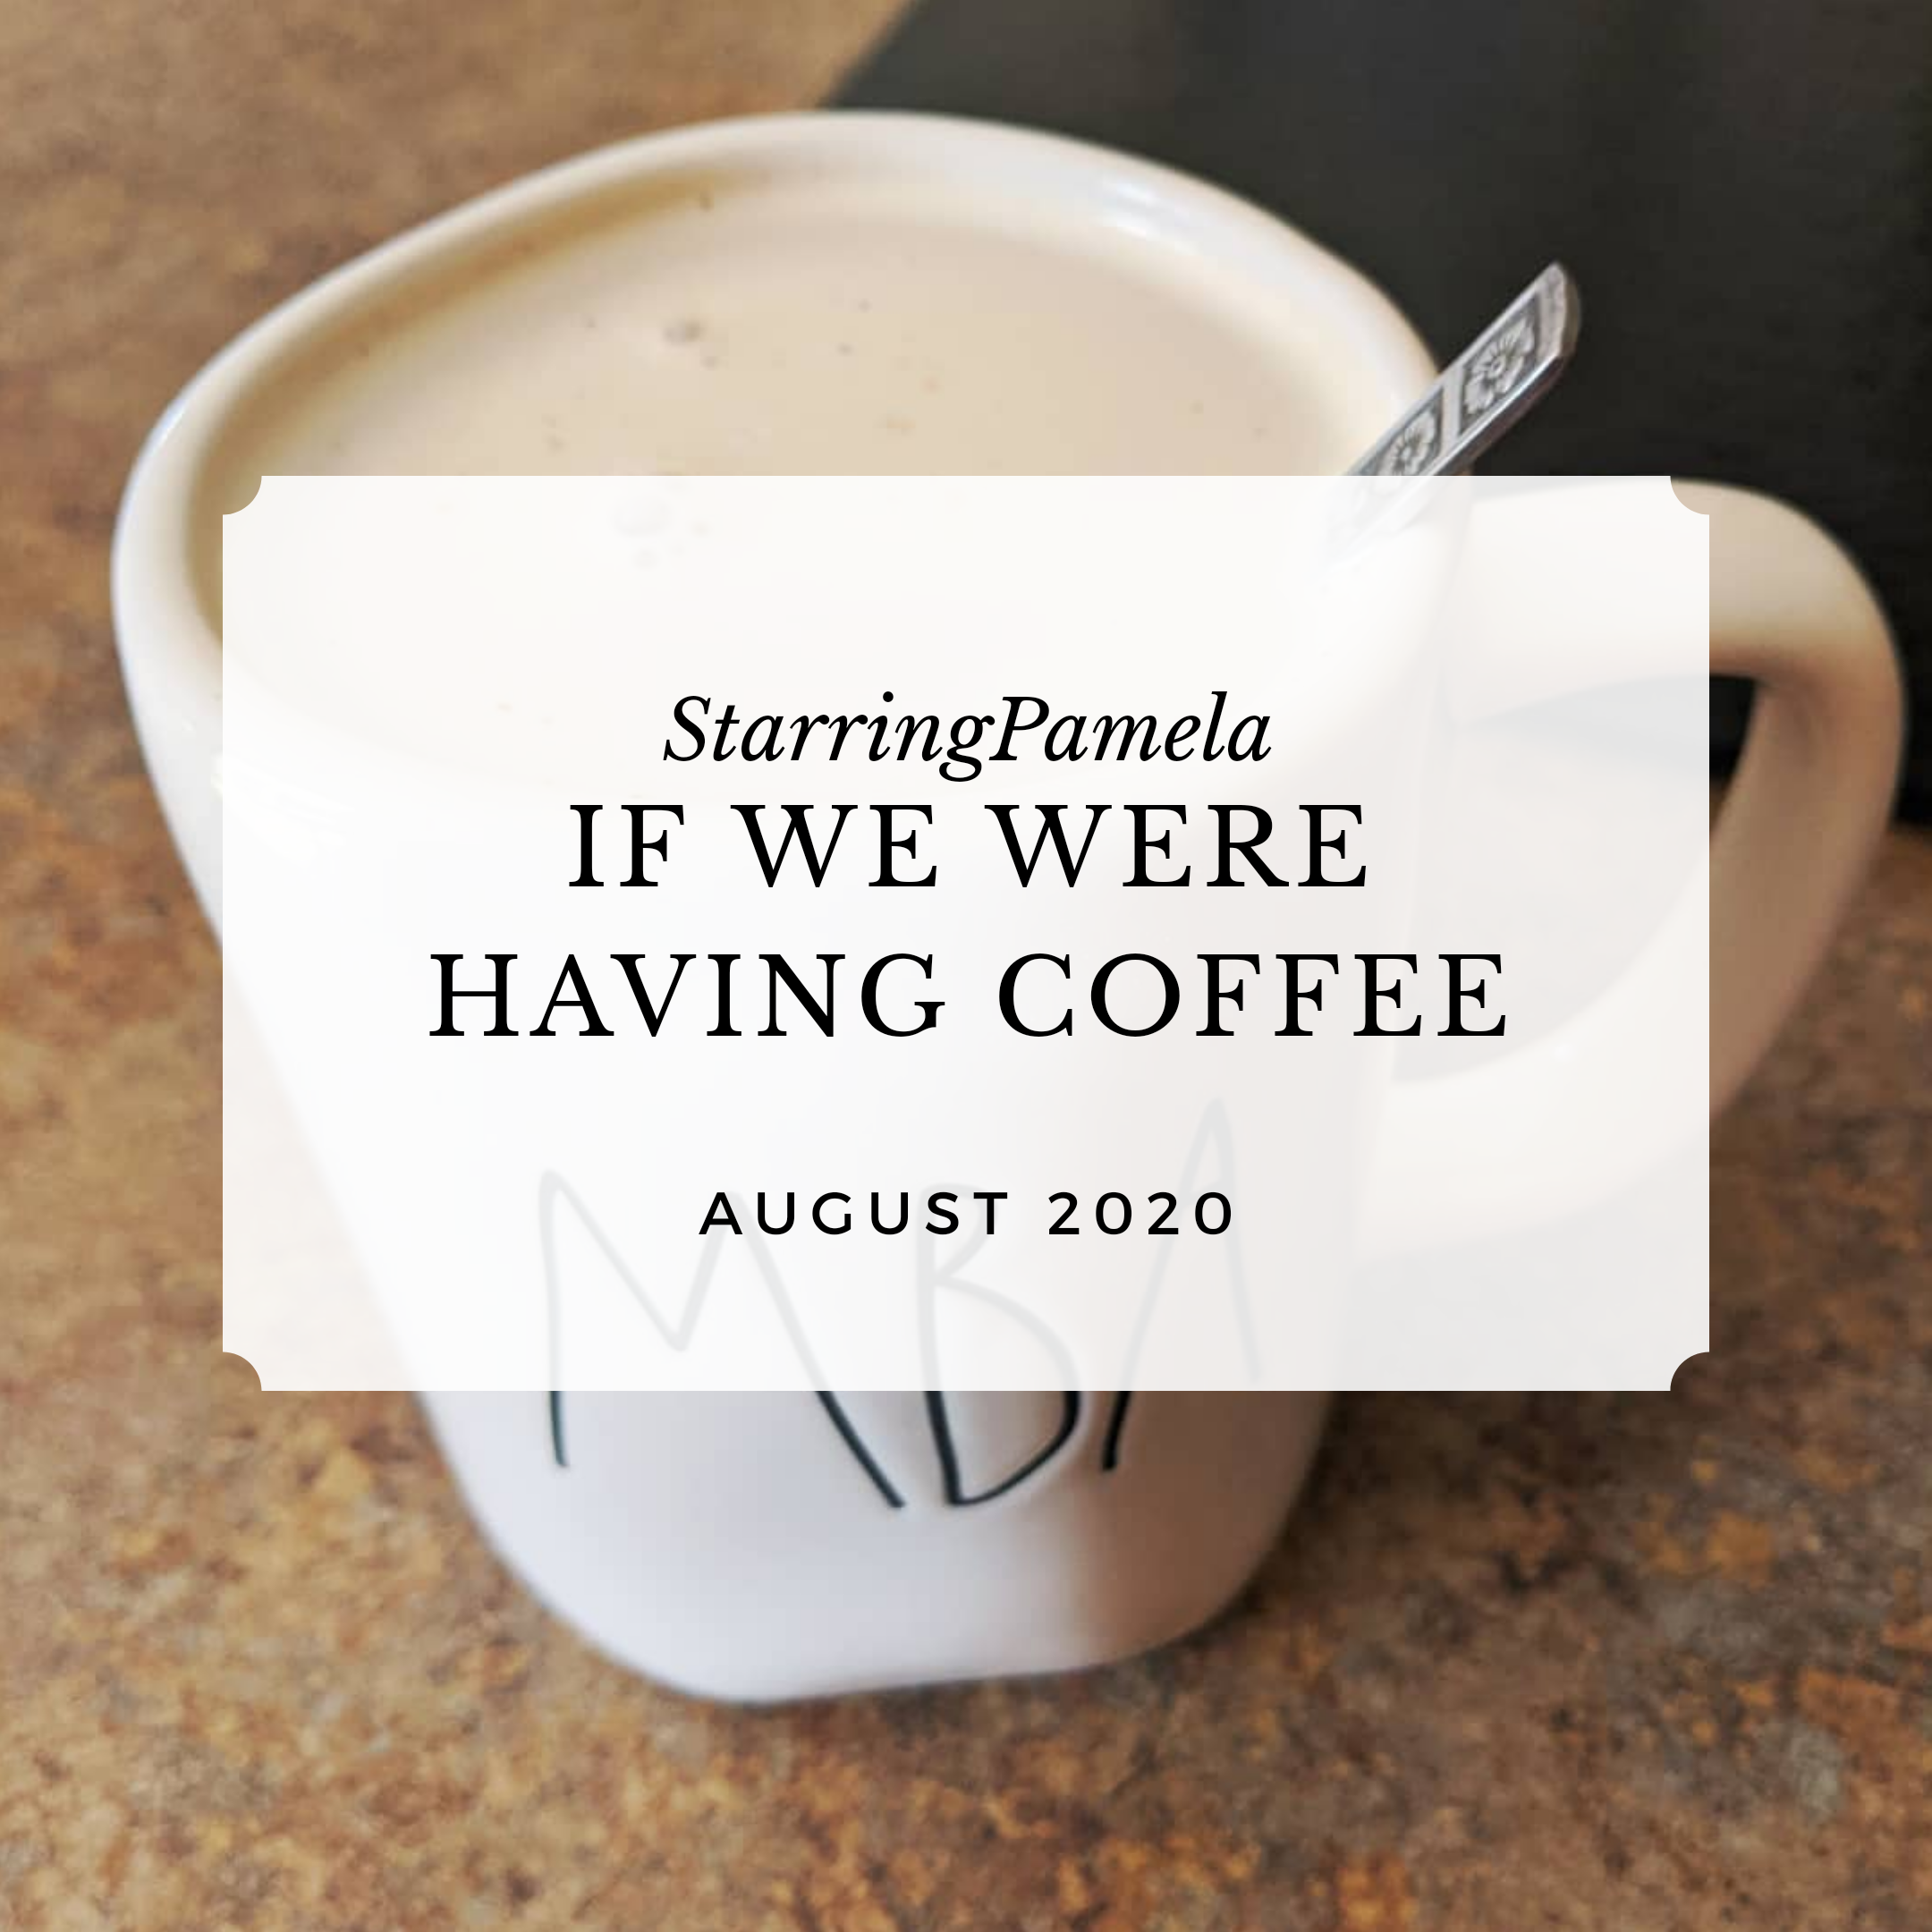 if we were having coffee august 2020 featured image